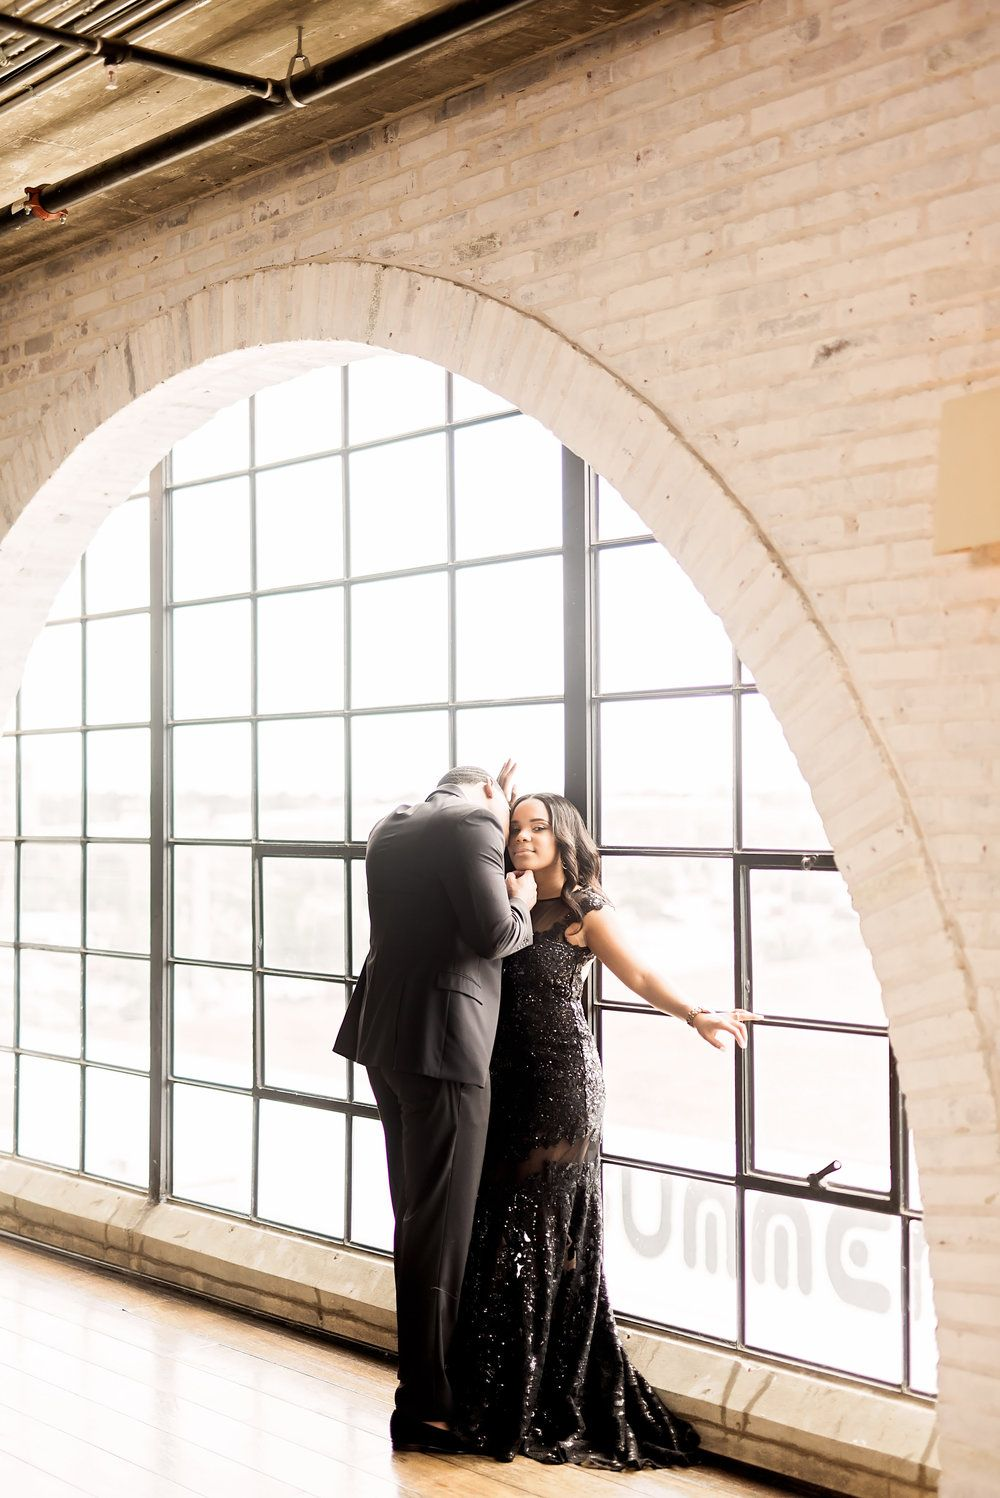 Ashley + David | Engagement Session at The Astorian in Houston, Texas -